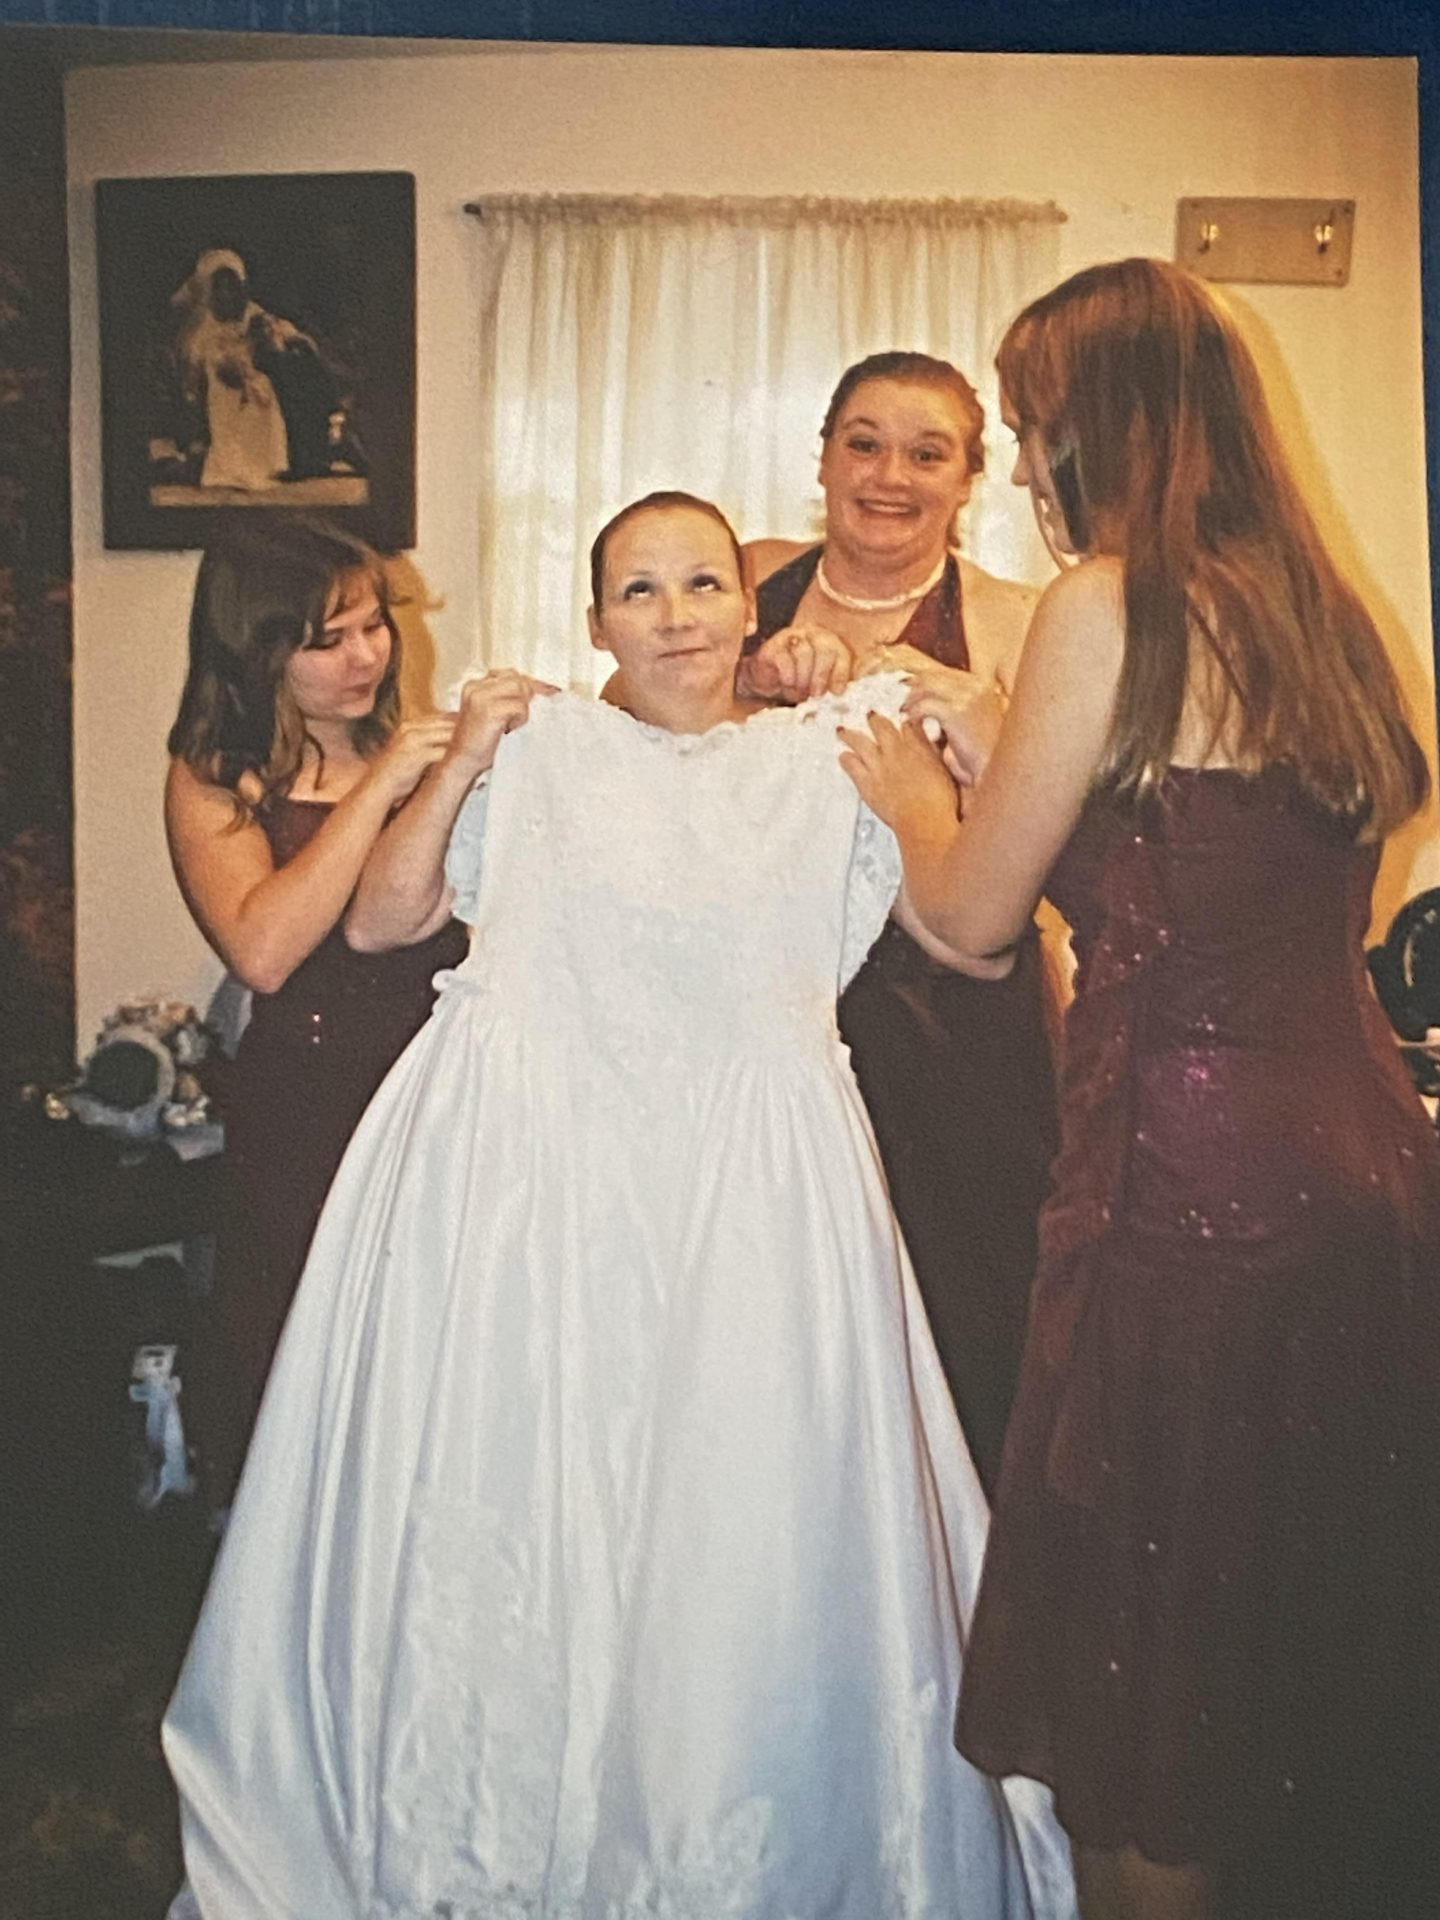 Getting into her wedding dress